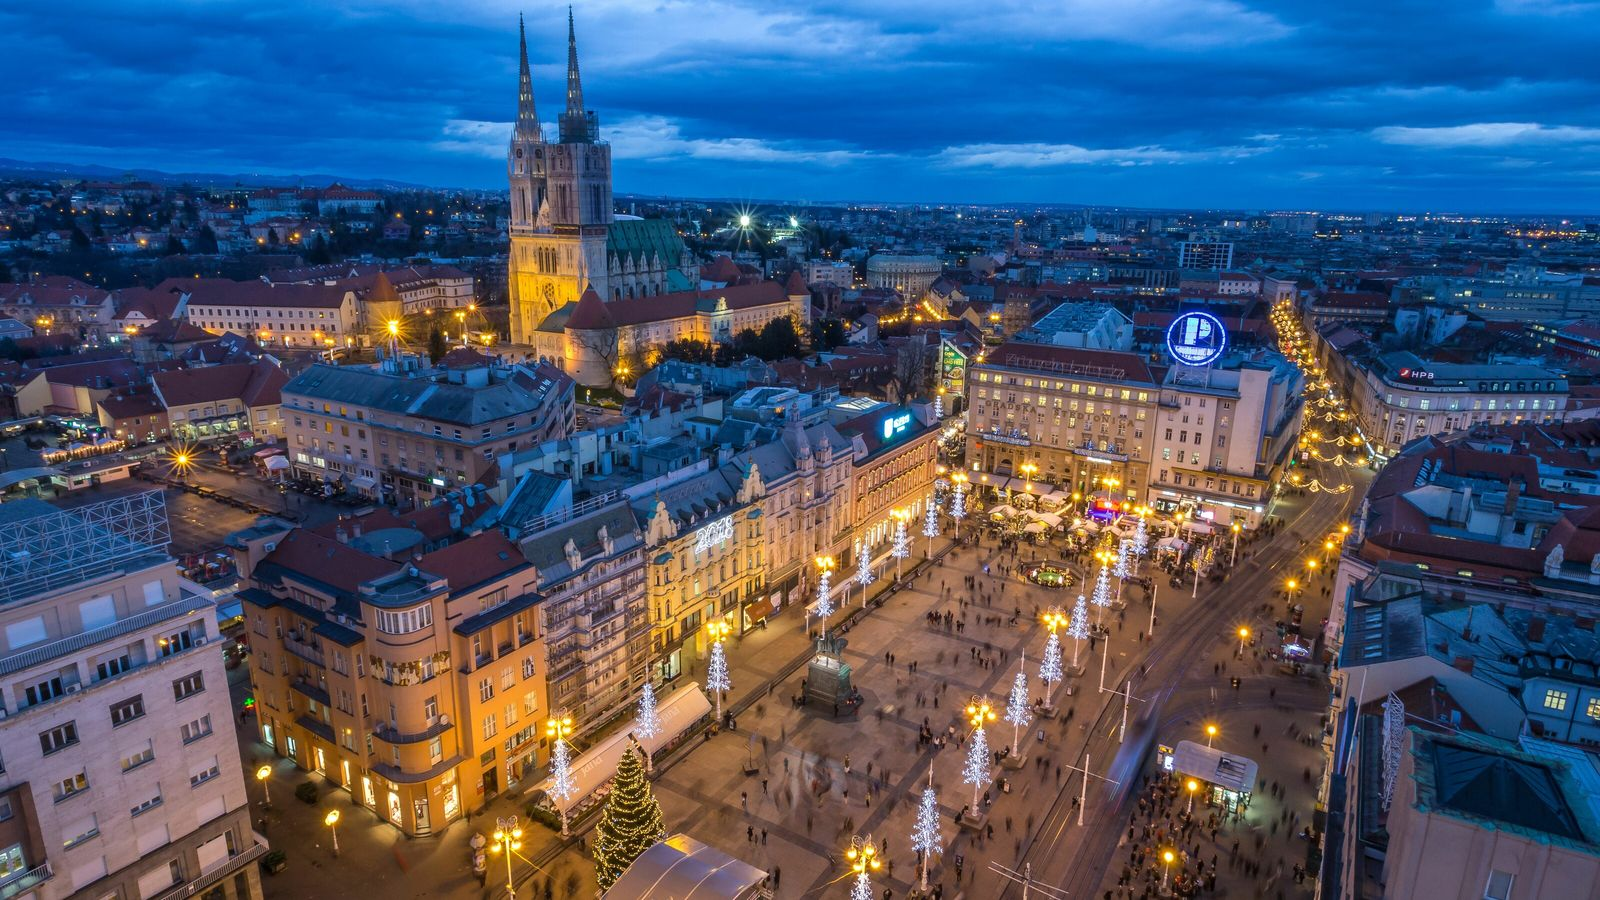 Zagreb's Christmas markets are renowned for being some of the most spectacular.